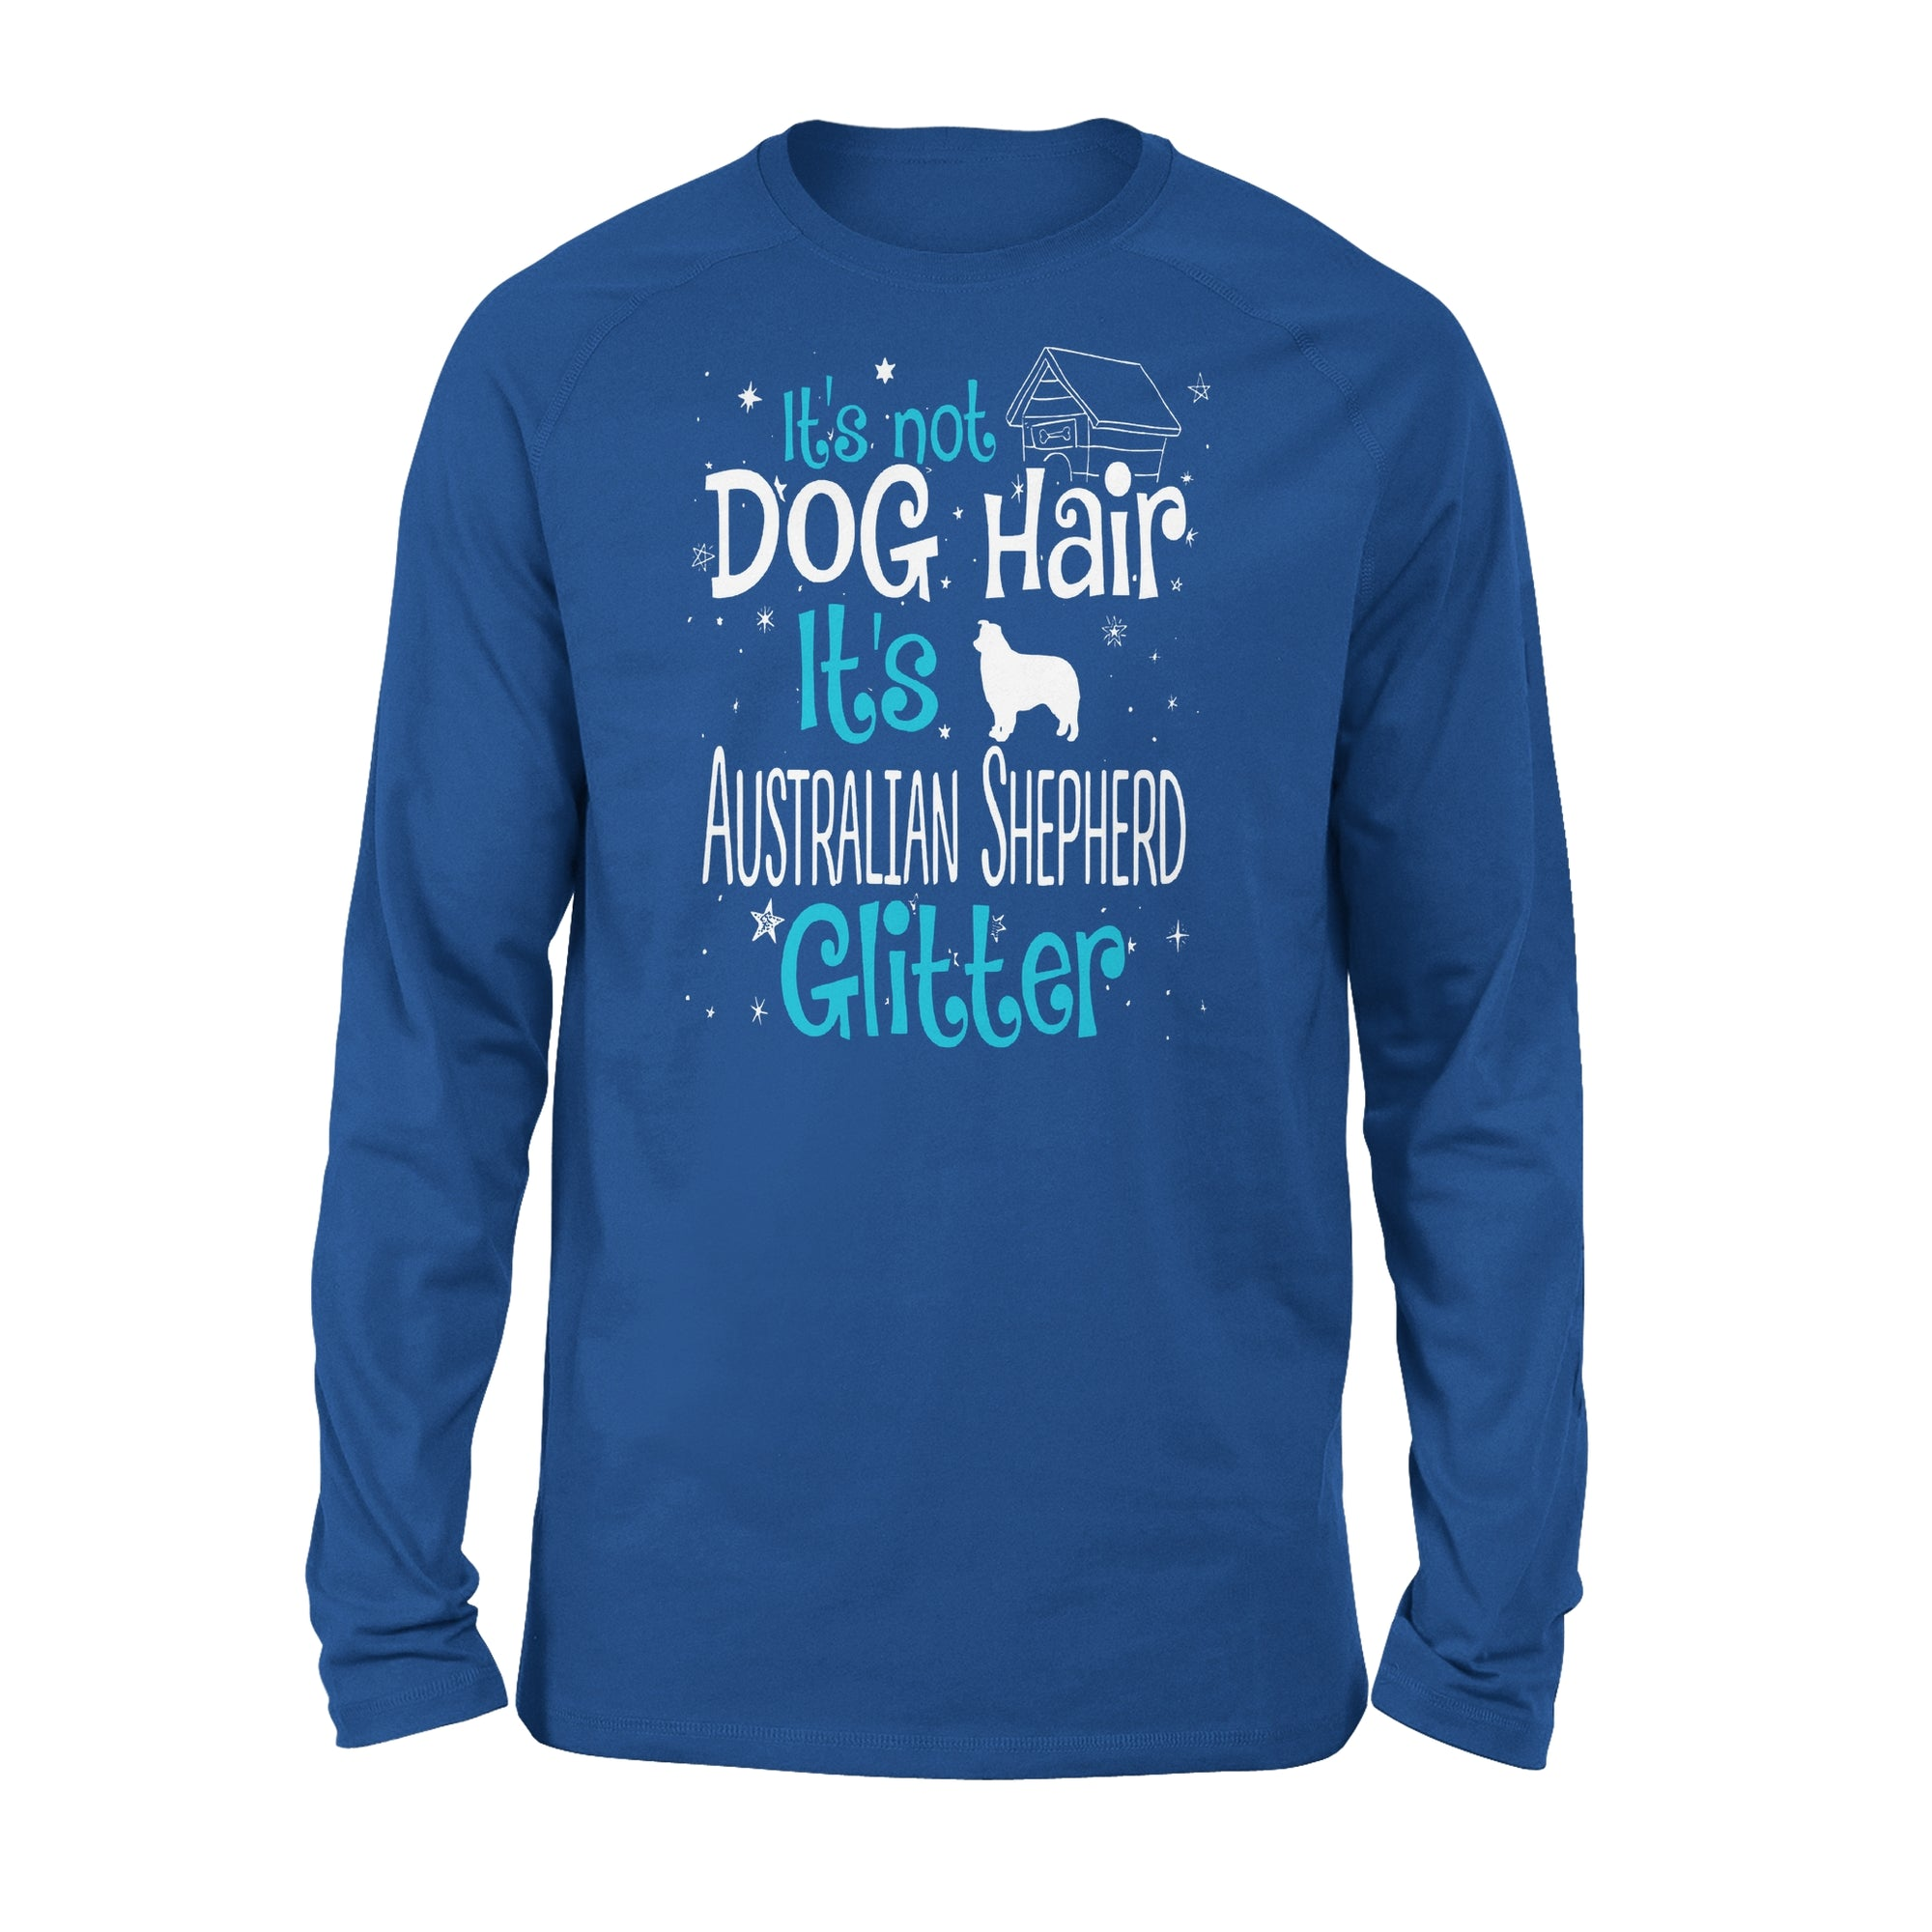 VIRA Premium Long Sleeve For Australian Shepherd Lovers